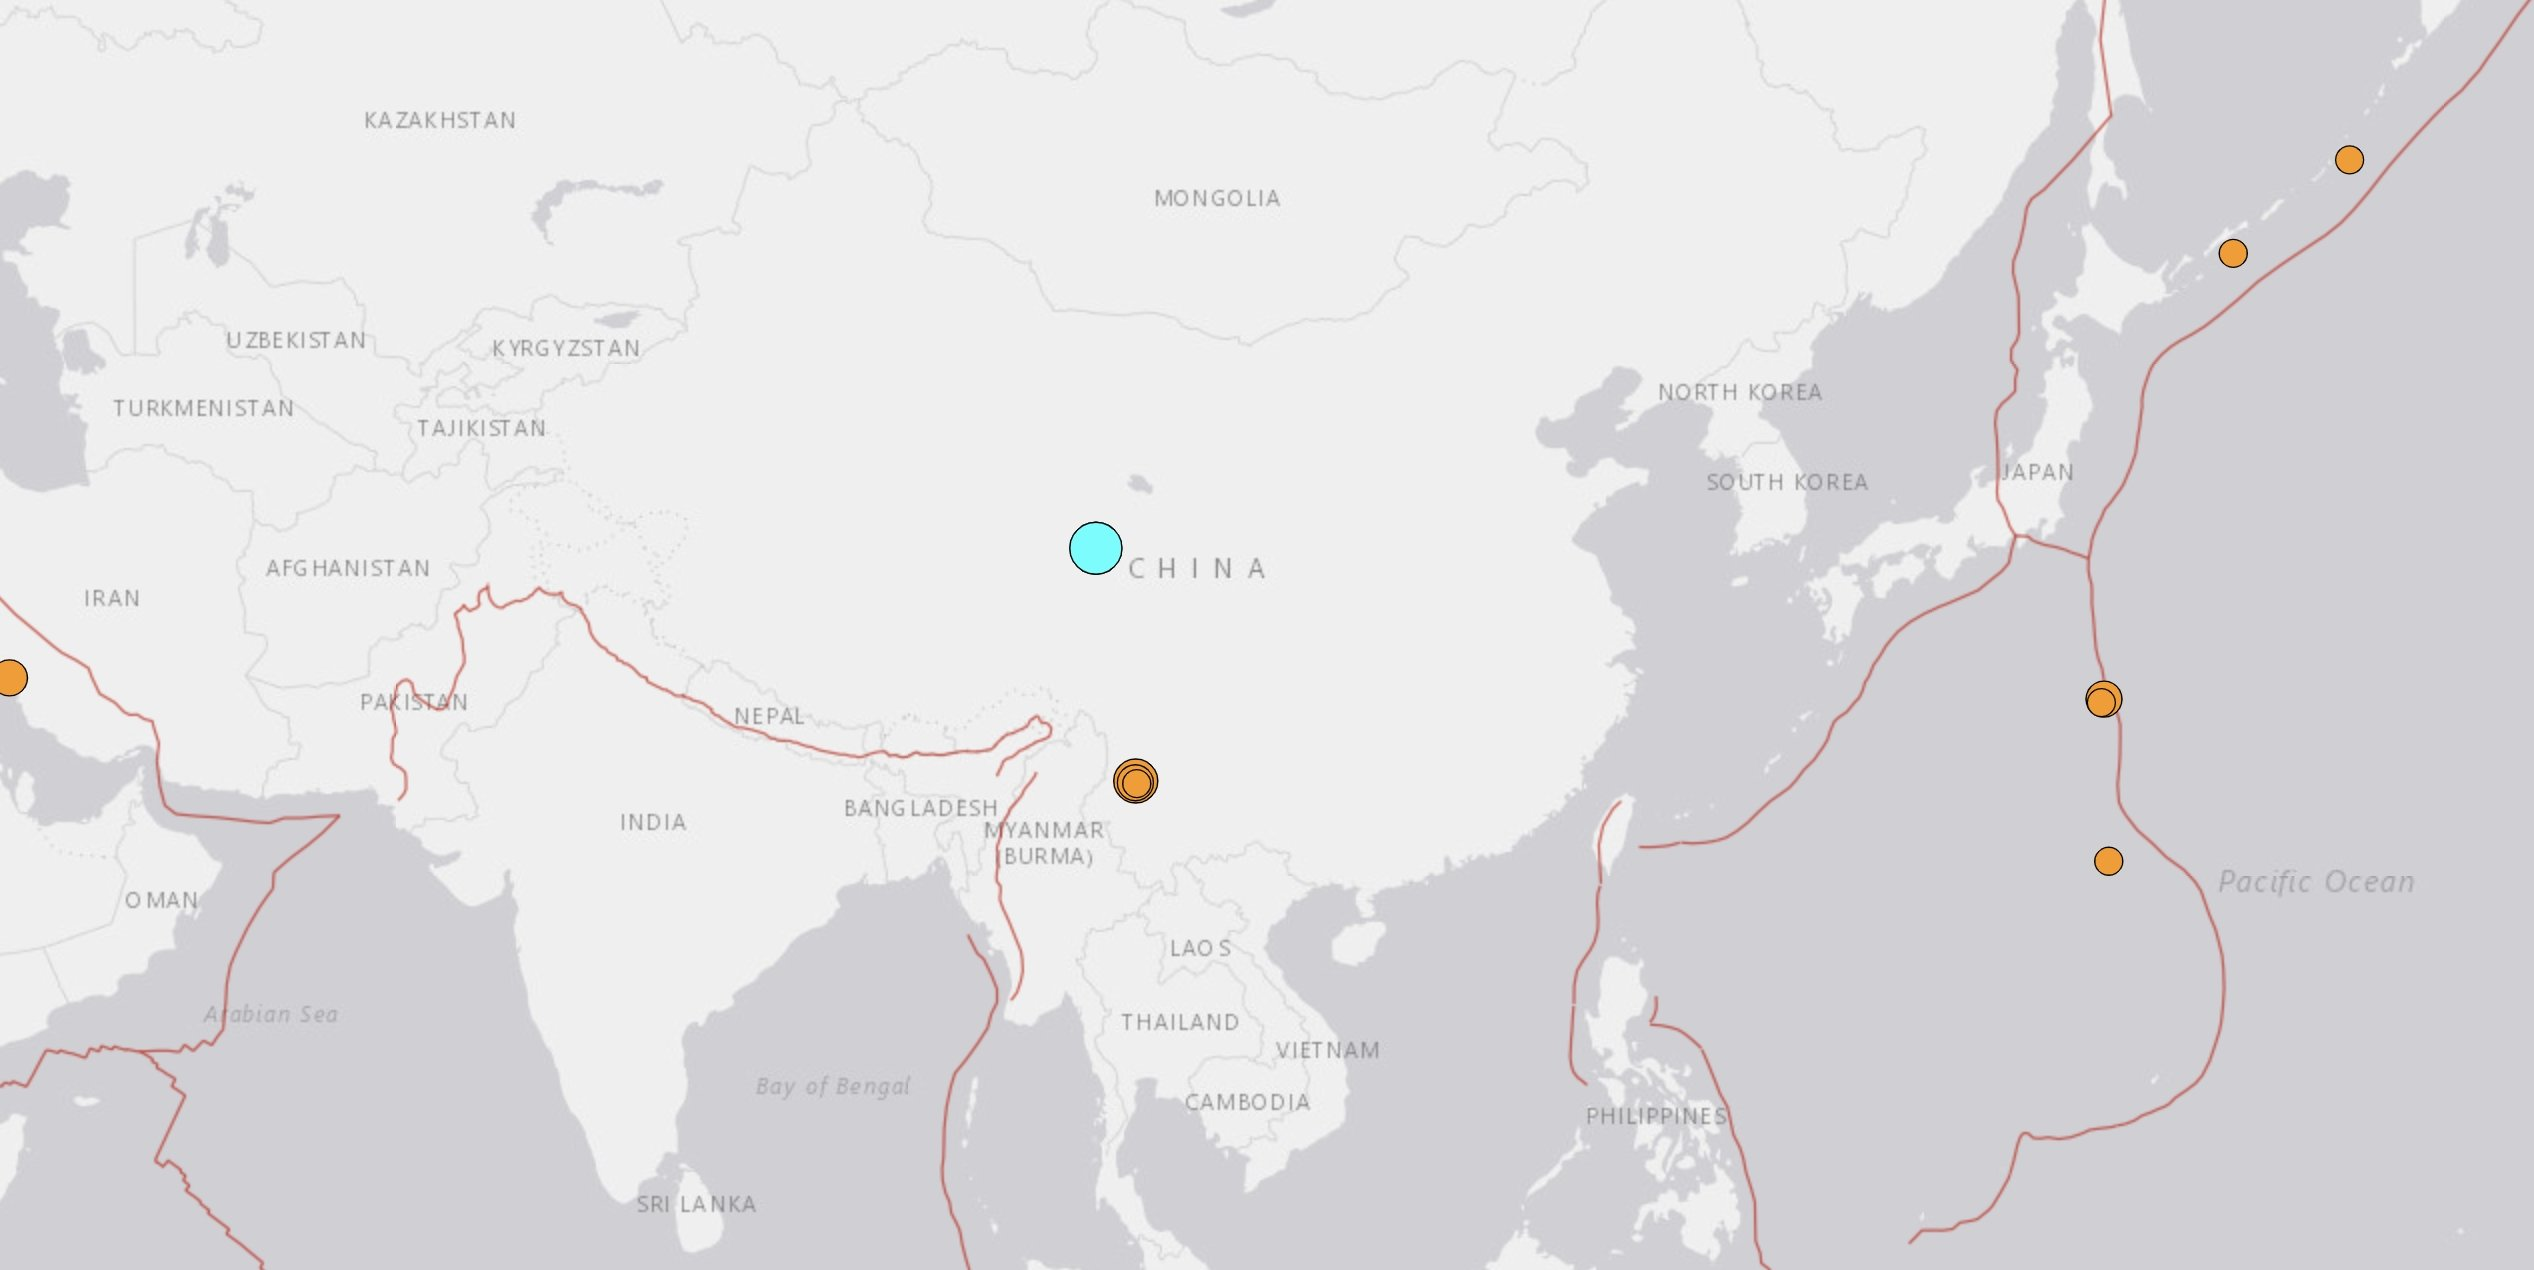 A screenshot shows the epicenter of the magnitude 7.4 earthquake that hit China's Qinghai province. (U.S. Geological Survey Photo)